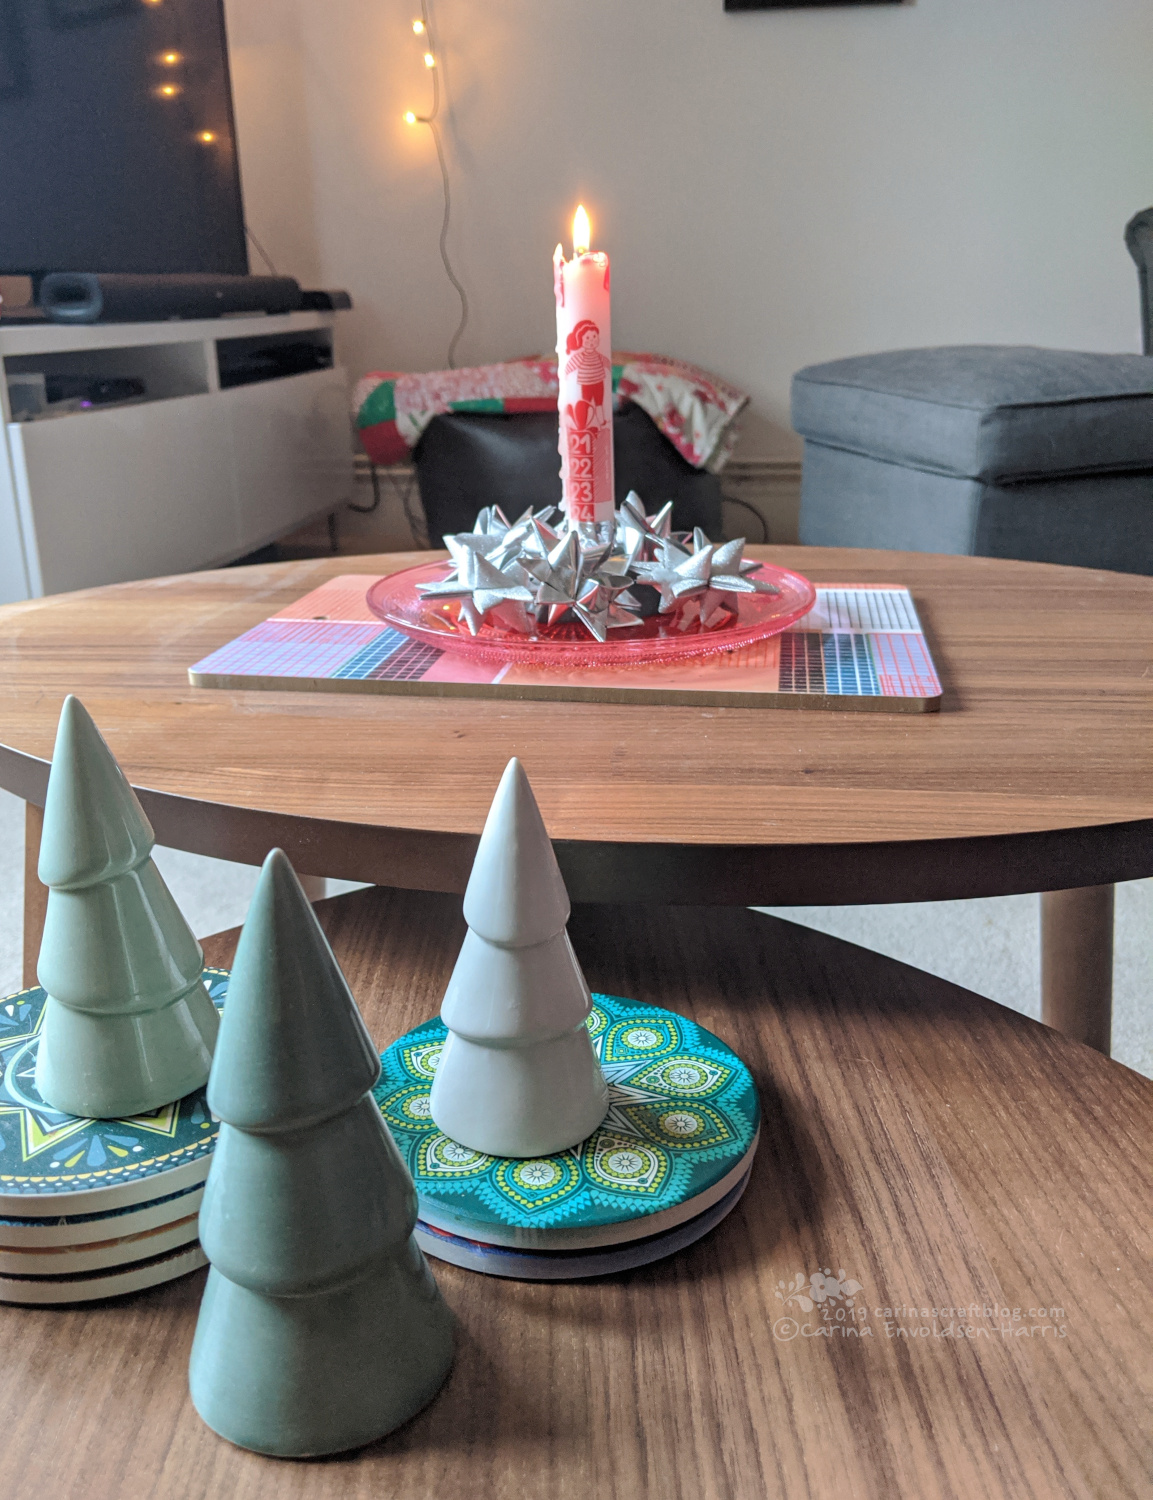 Coffee table with ceramic Christmas trees and an advent candle.